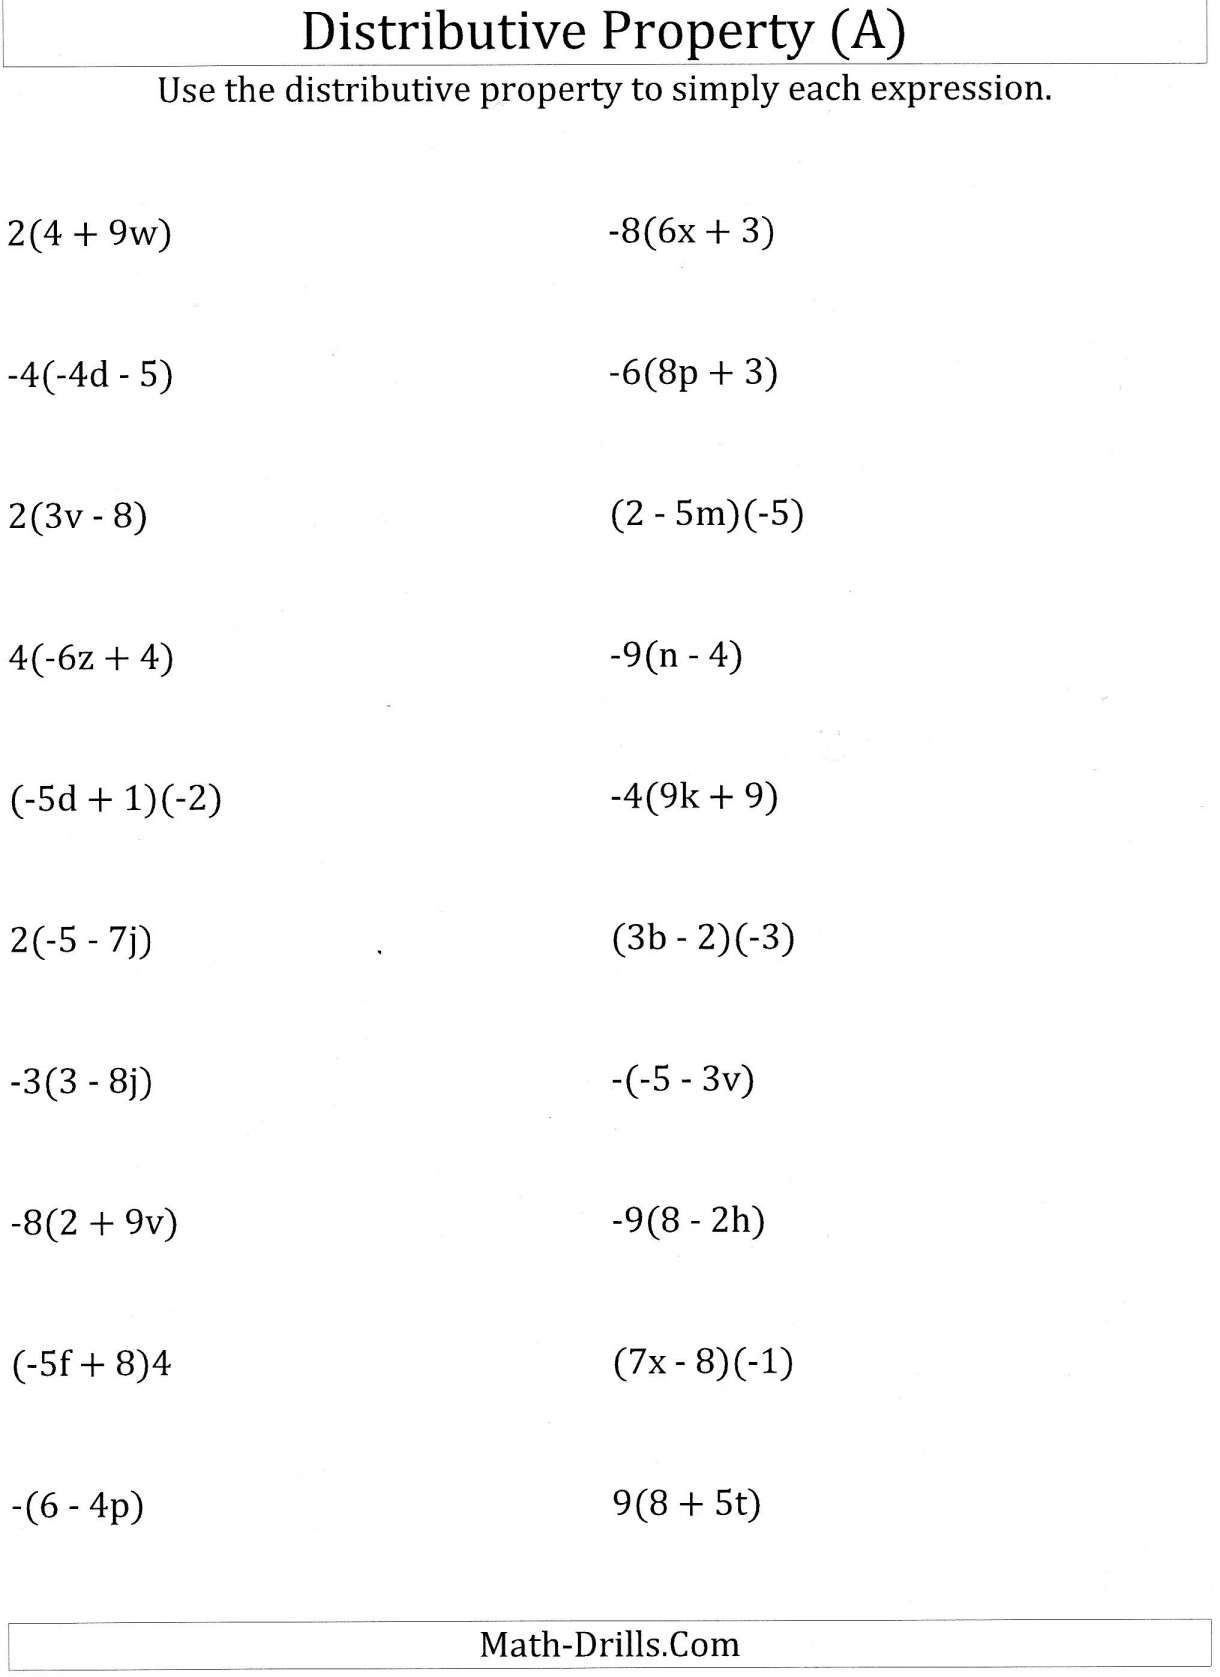 9 6th Grade Math Algebra Properties Worksheet Math Practice Worksheets Distributive Property Algebra Worksheets